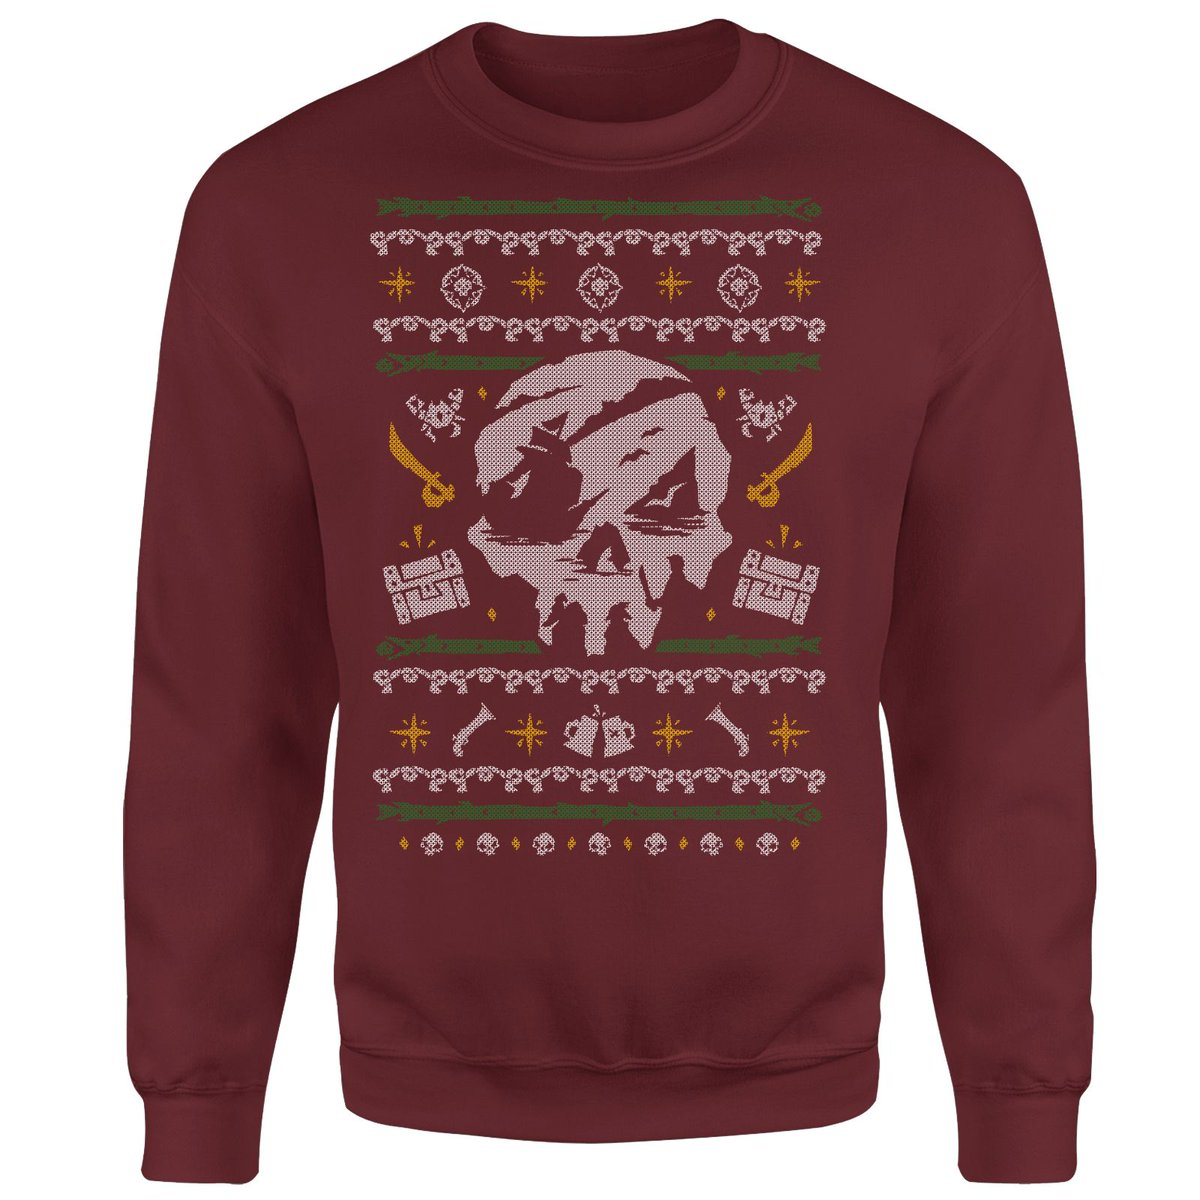 In case you need to share your passion for pirates in a suitable style for the season, our official merch outpost now stocks a Sea of Thieves-inspired Christmas sweatshirt and a range of festive greetings cards!  🎄